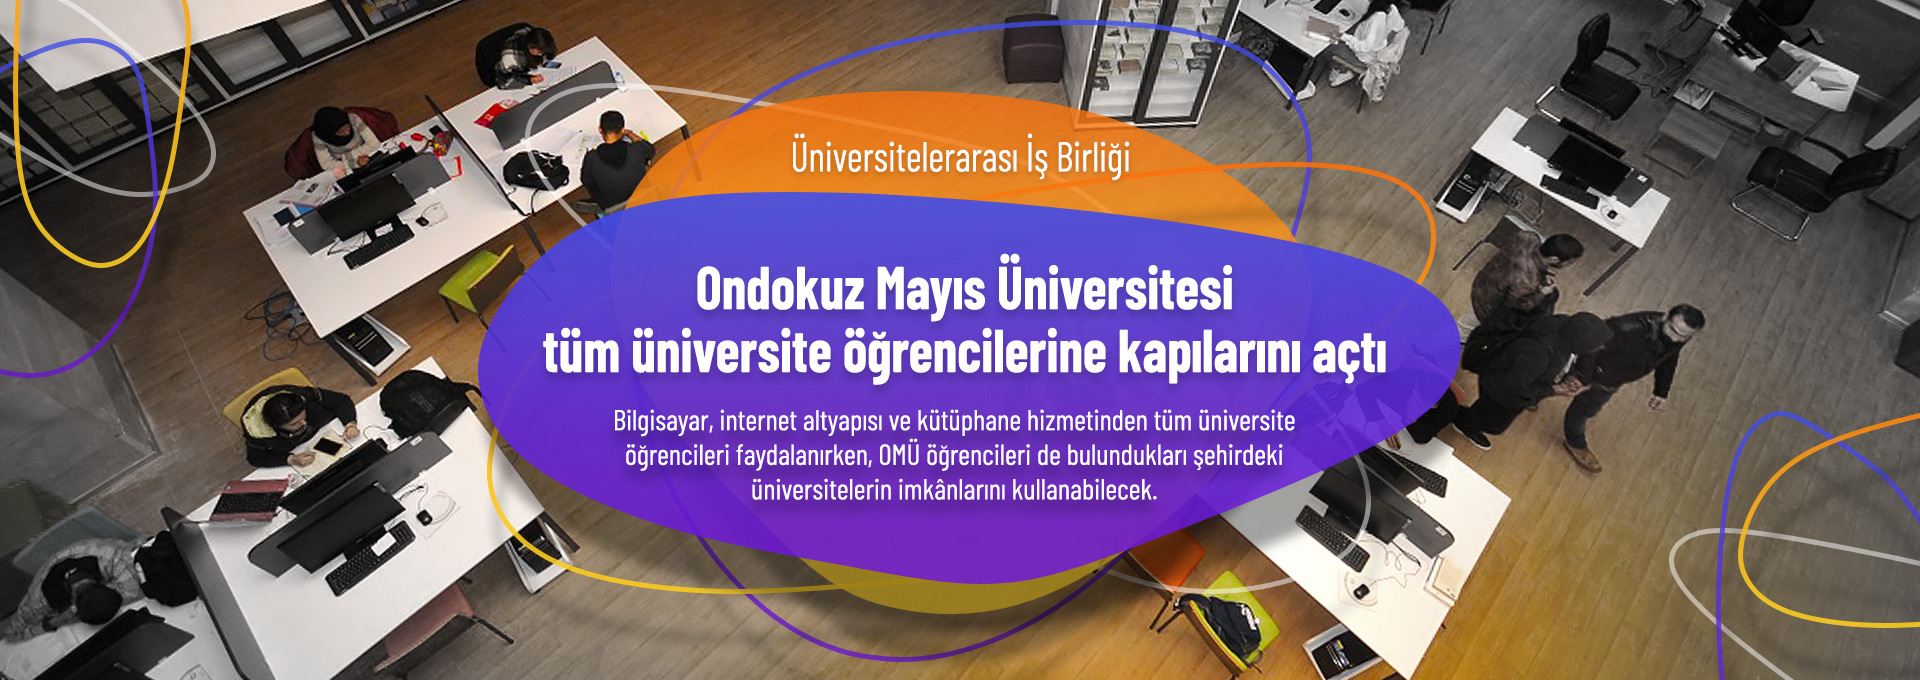 Ondokuz Mayıs University (OMU) Opens Its Doors to All University Students